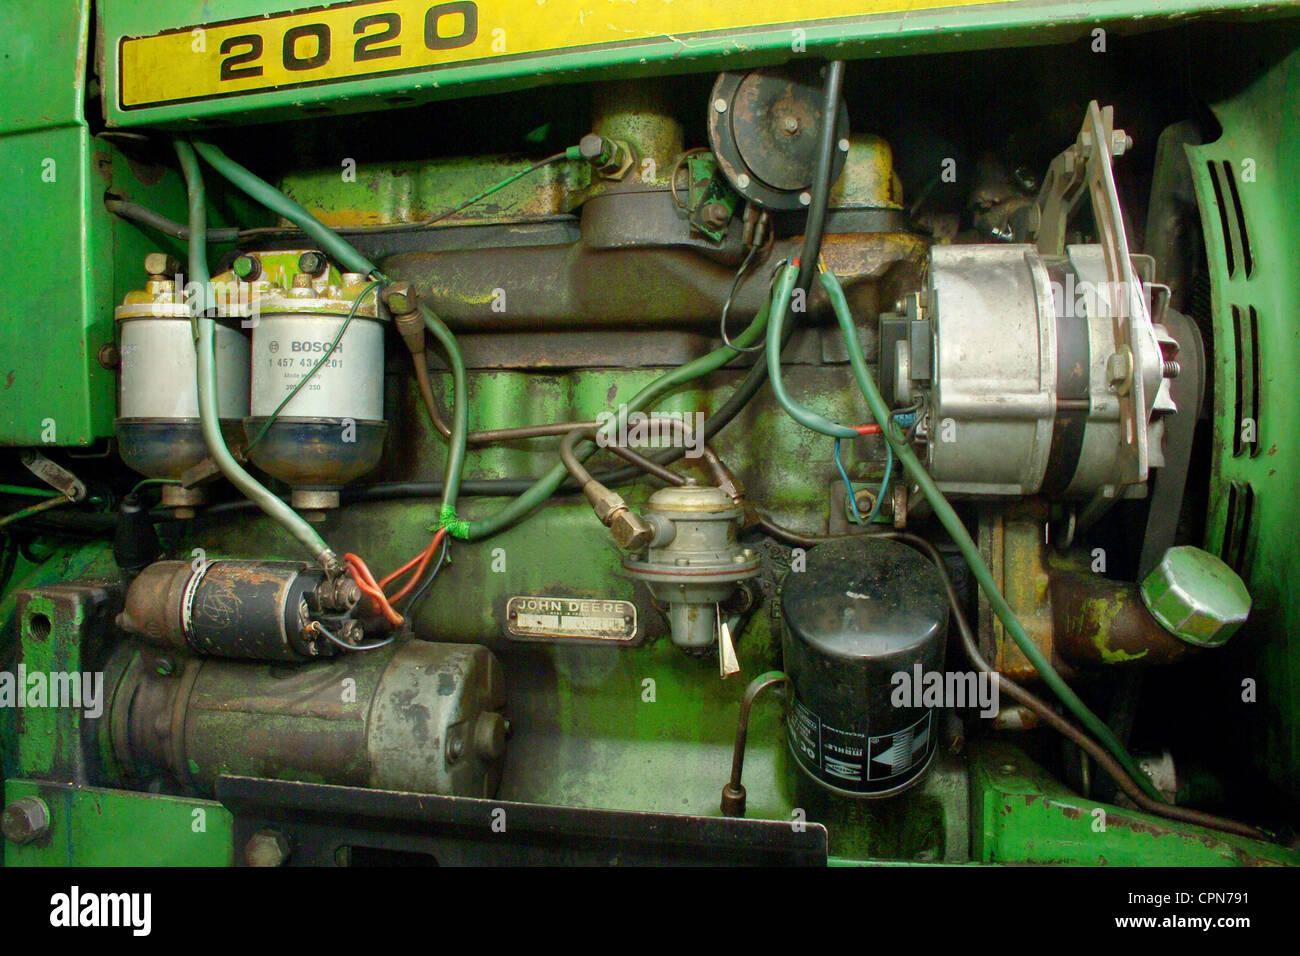 1020 John Deere Wiring Agriculture Engine Tractor Diesel Engine Made By John